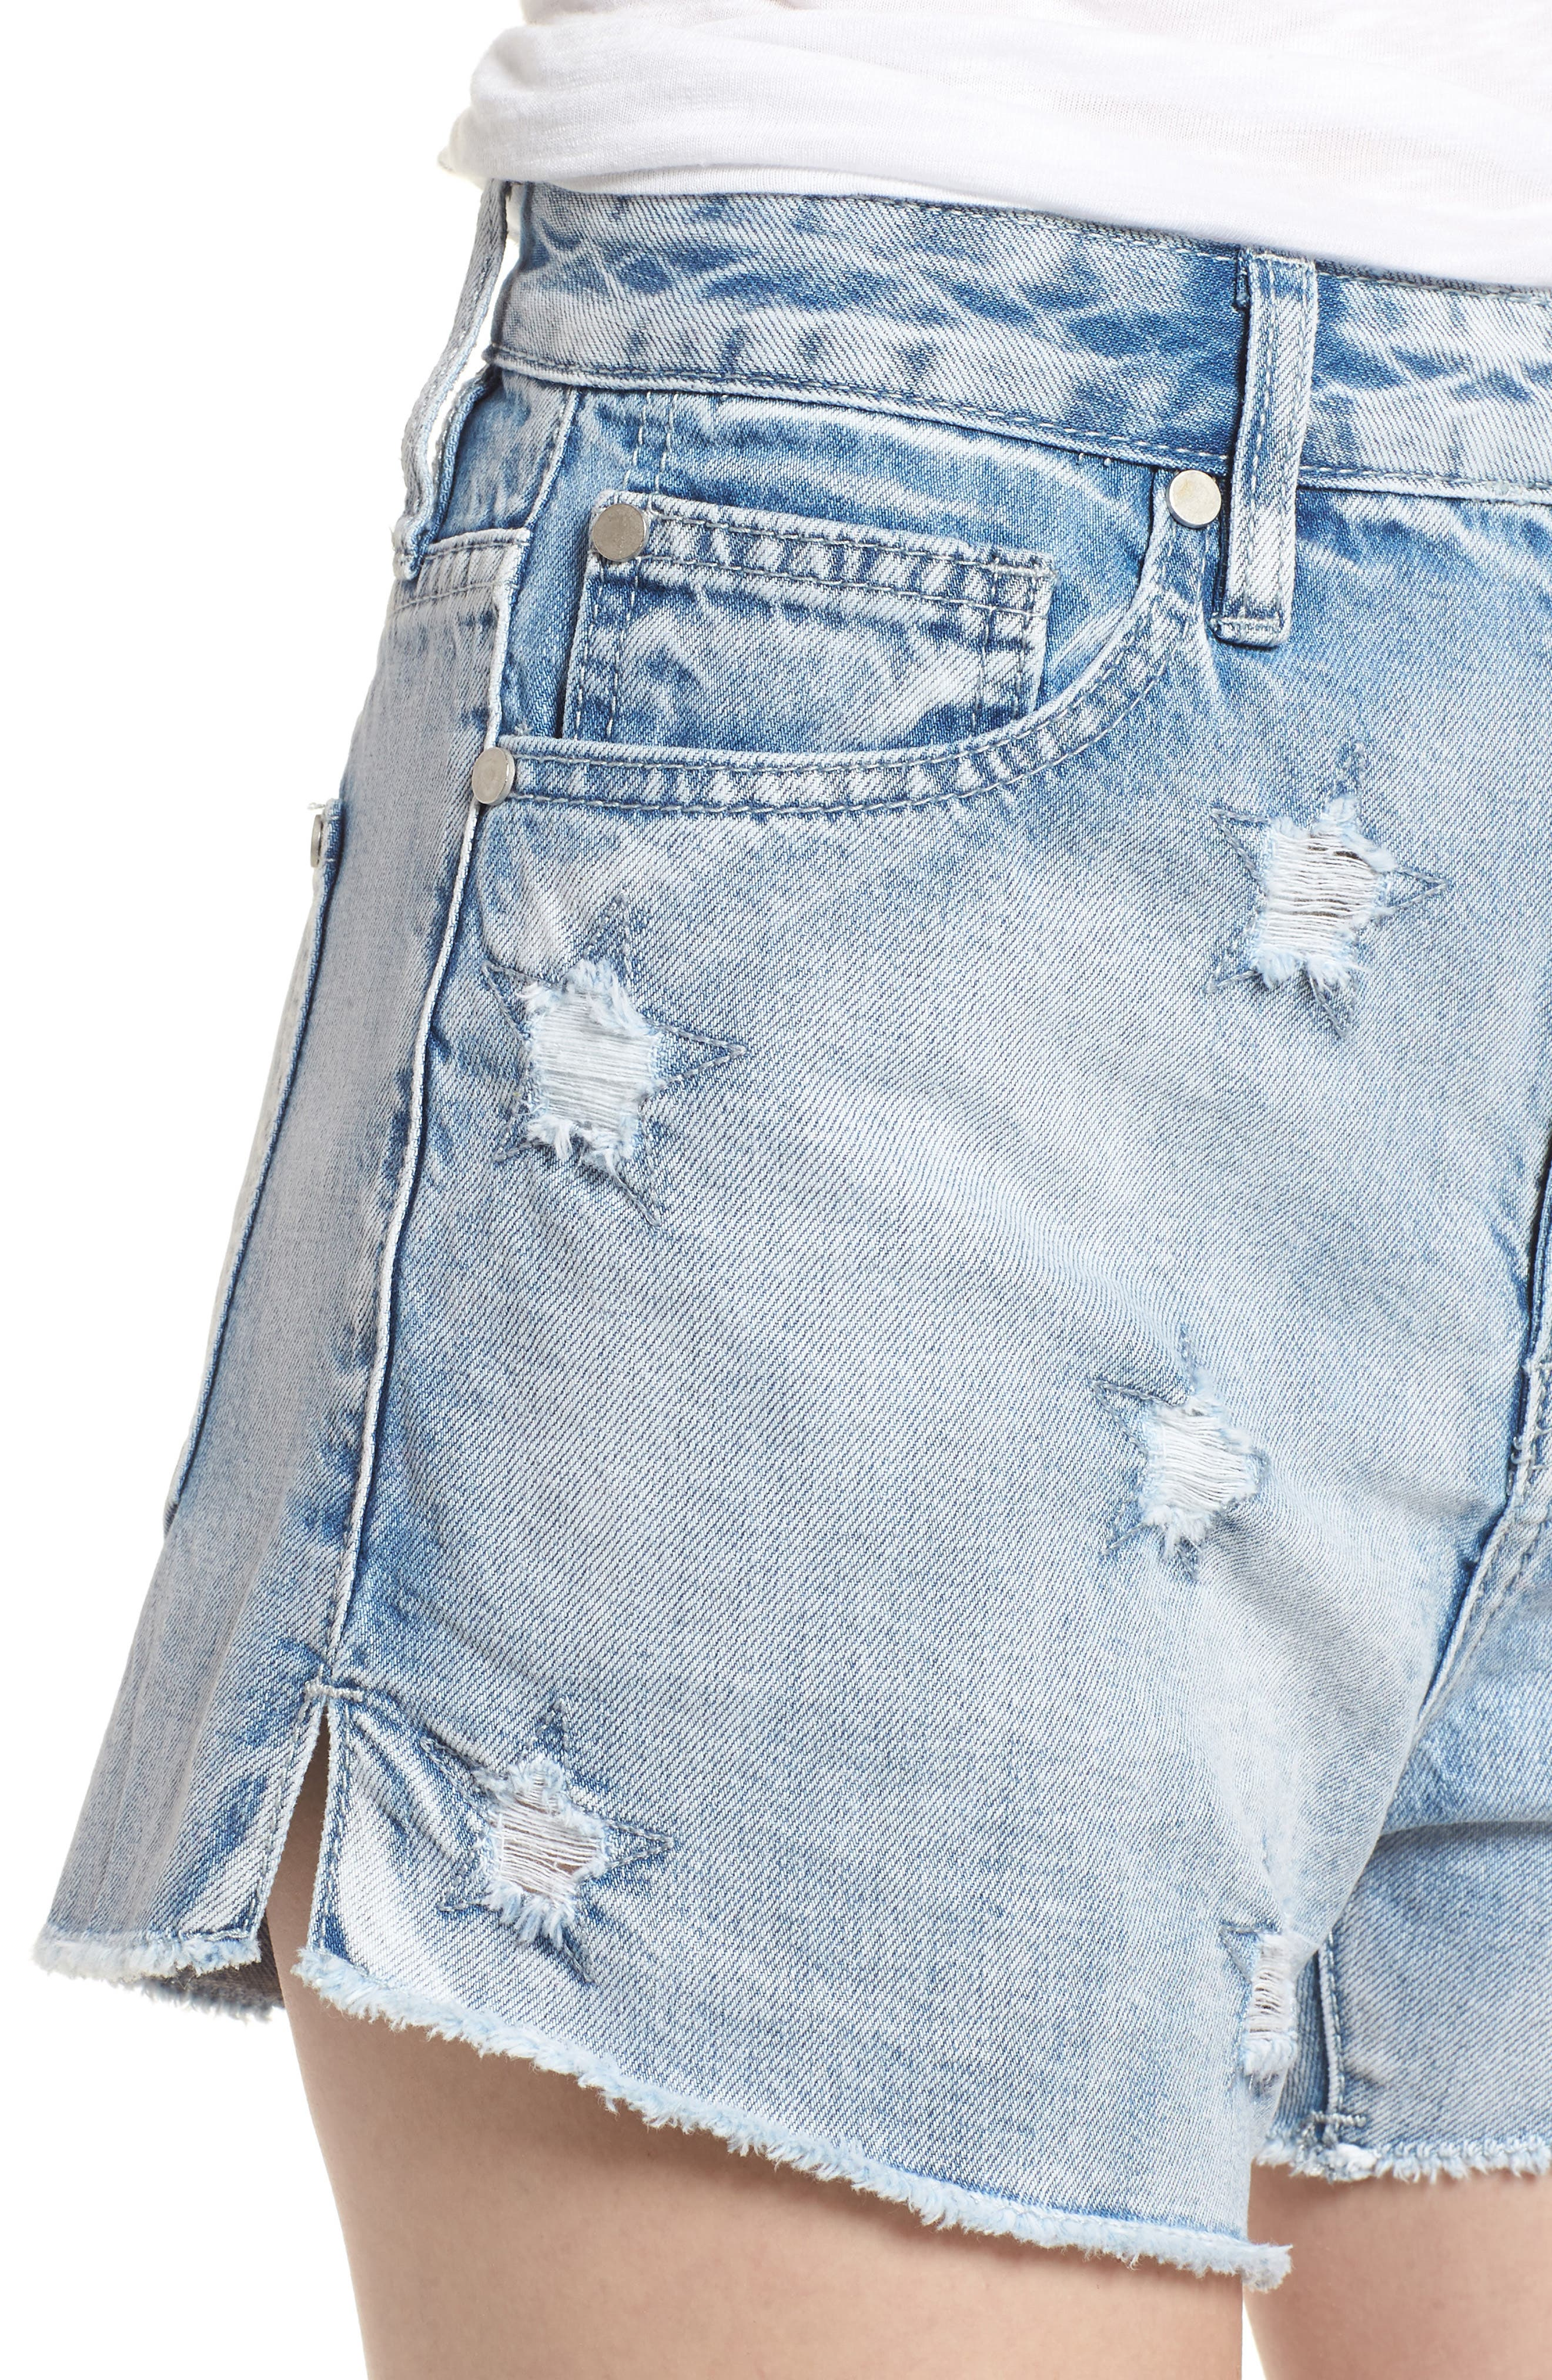 Acid Wash Star Denim Shorts,                             Alternate thumbnail 4, color,                             Super Light Acid